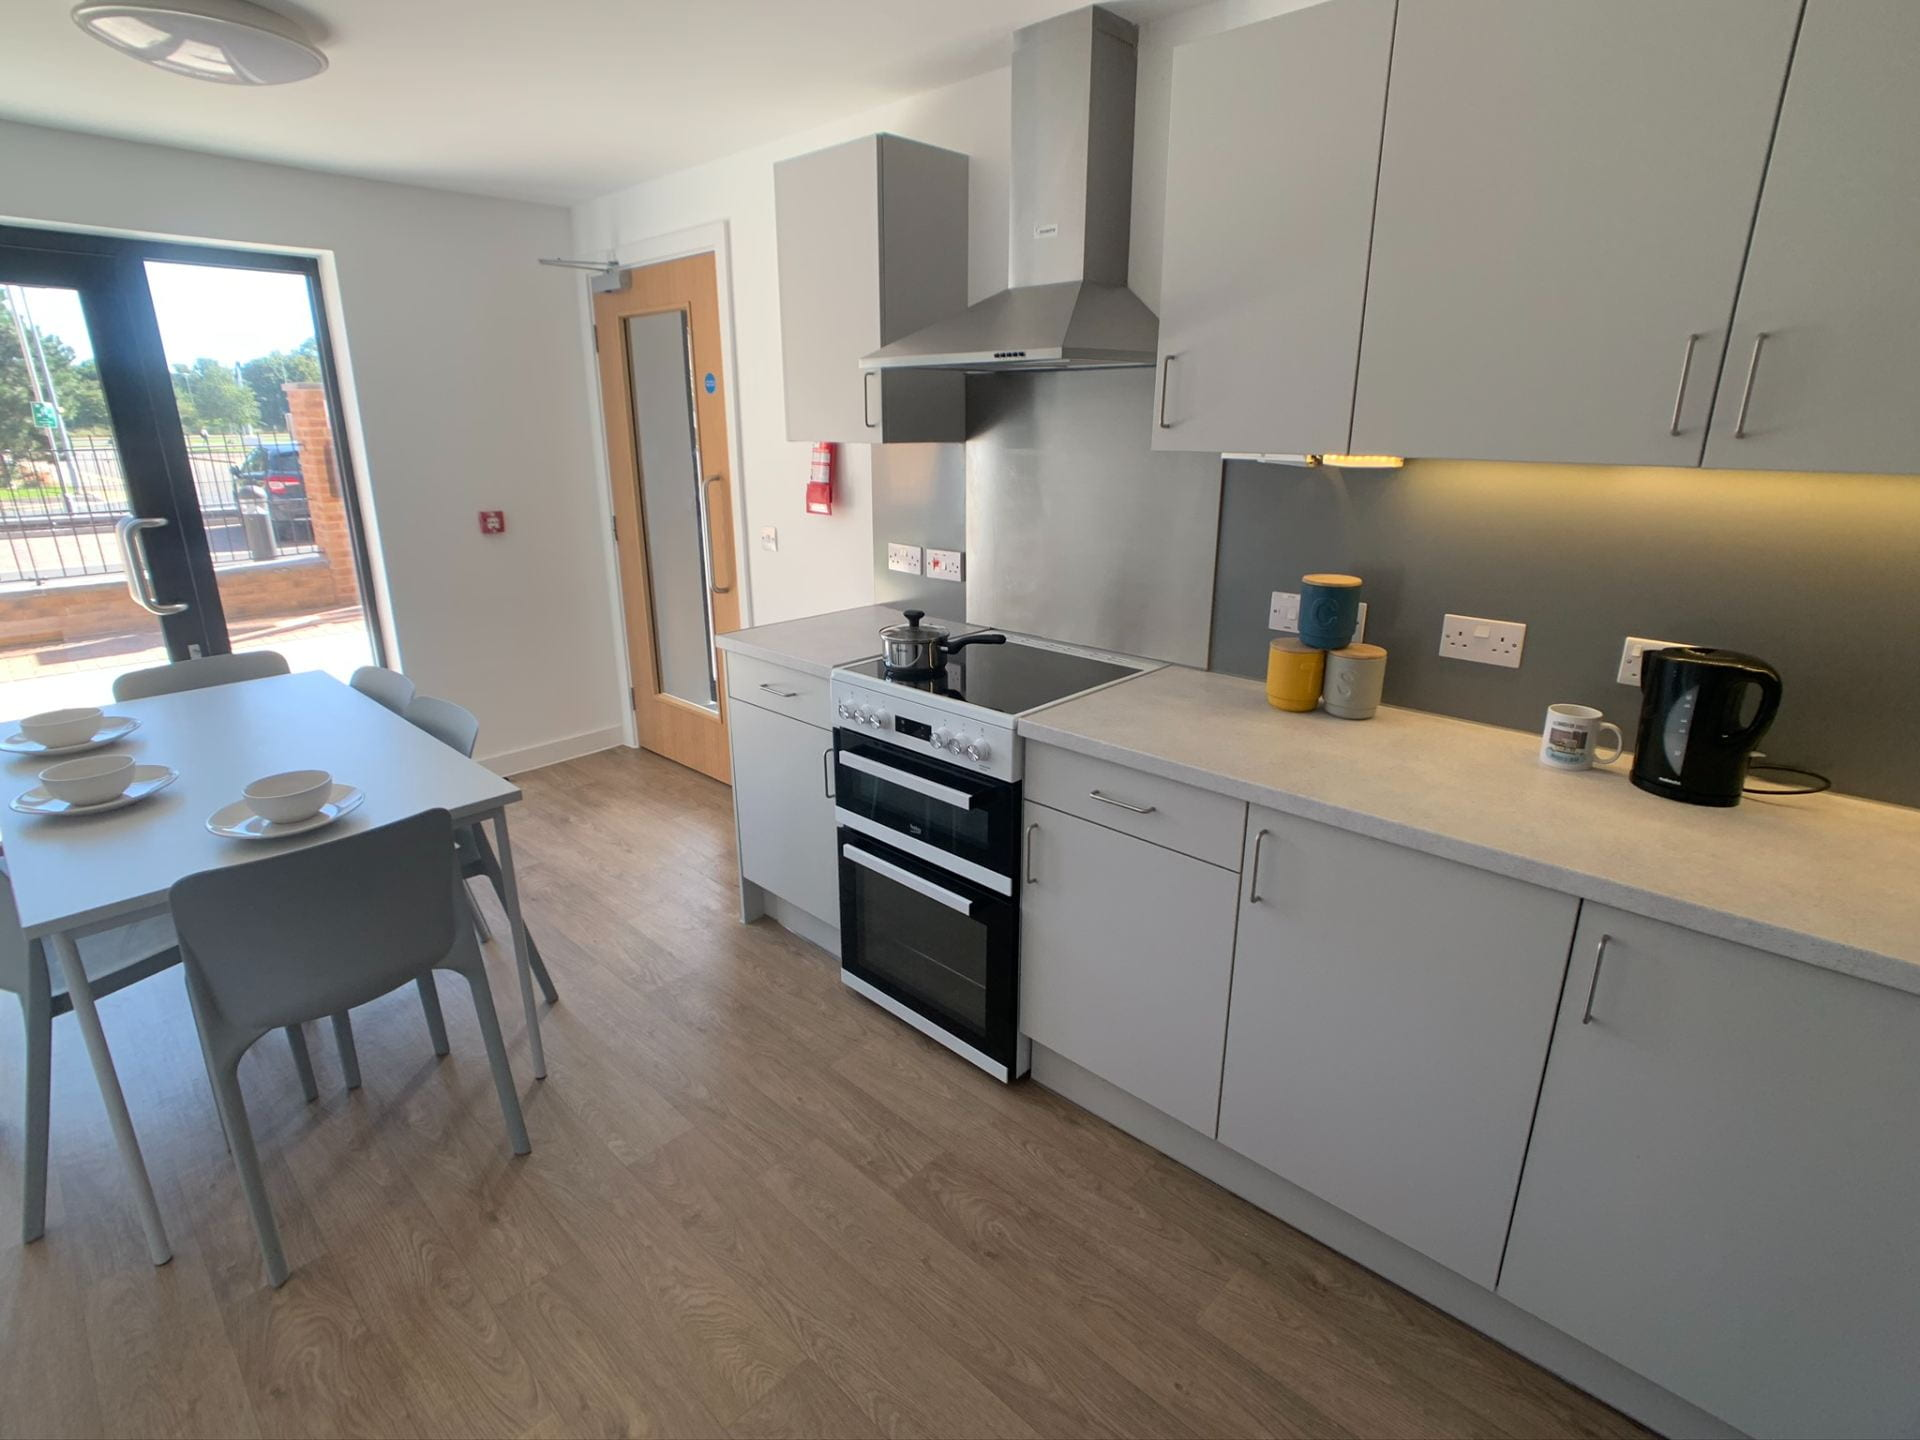 Valentine Court kitchen showing table, appliances, dining table and worktop.